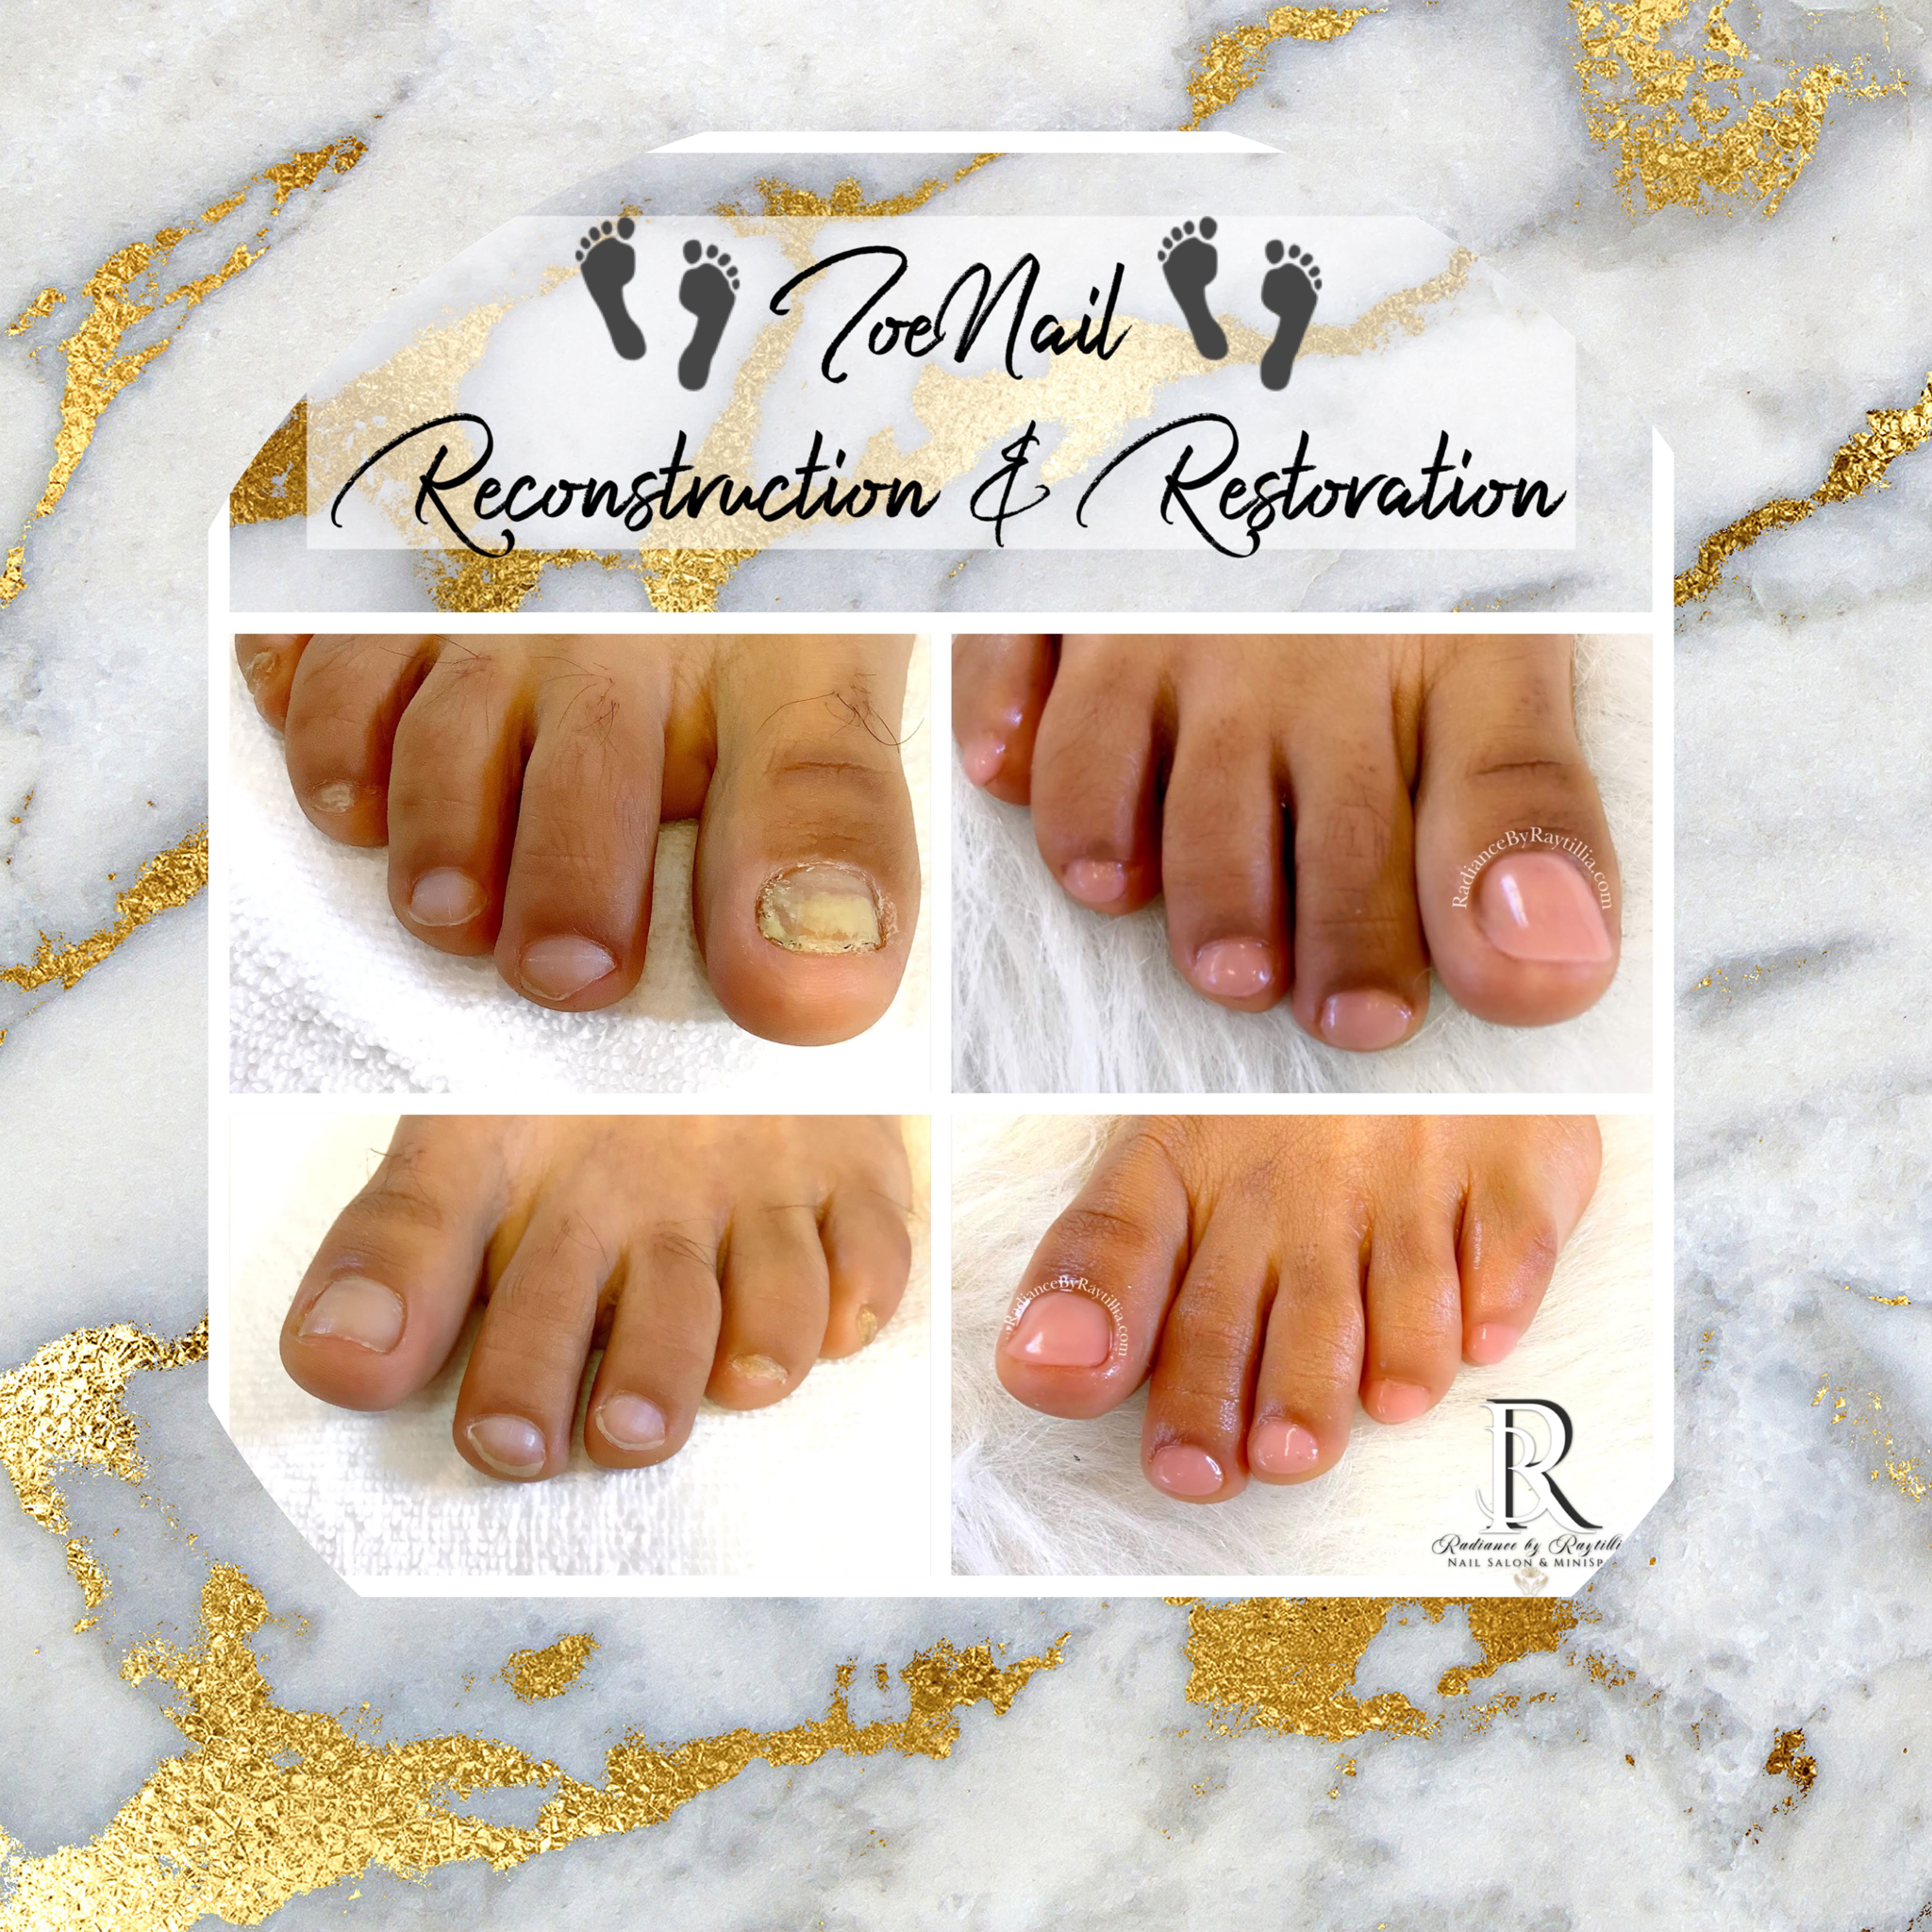 Radiance Raytillia Nail Facial Spa Pedicures Manicures Gel Shellac Polish Enhancements CND Brunswick Georgia SSI